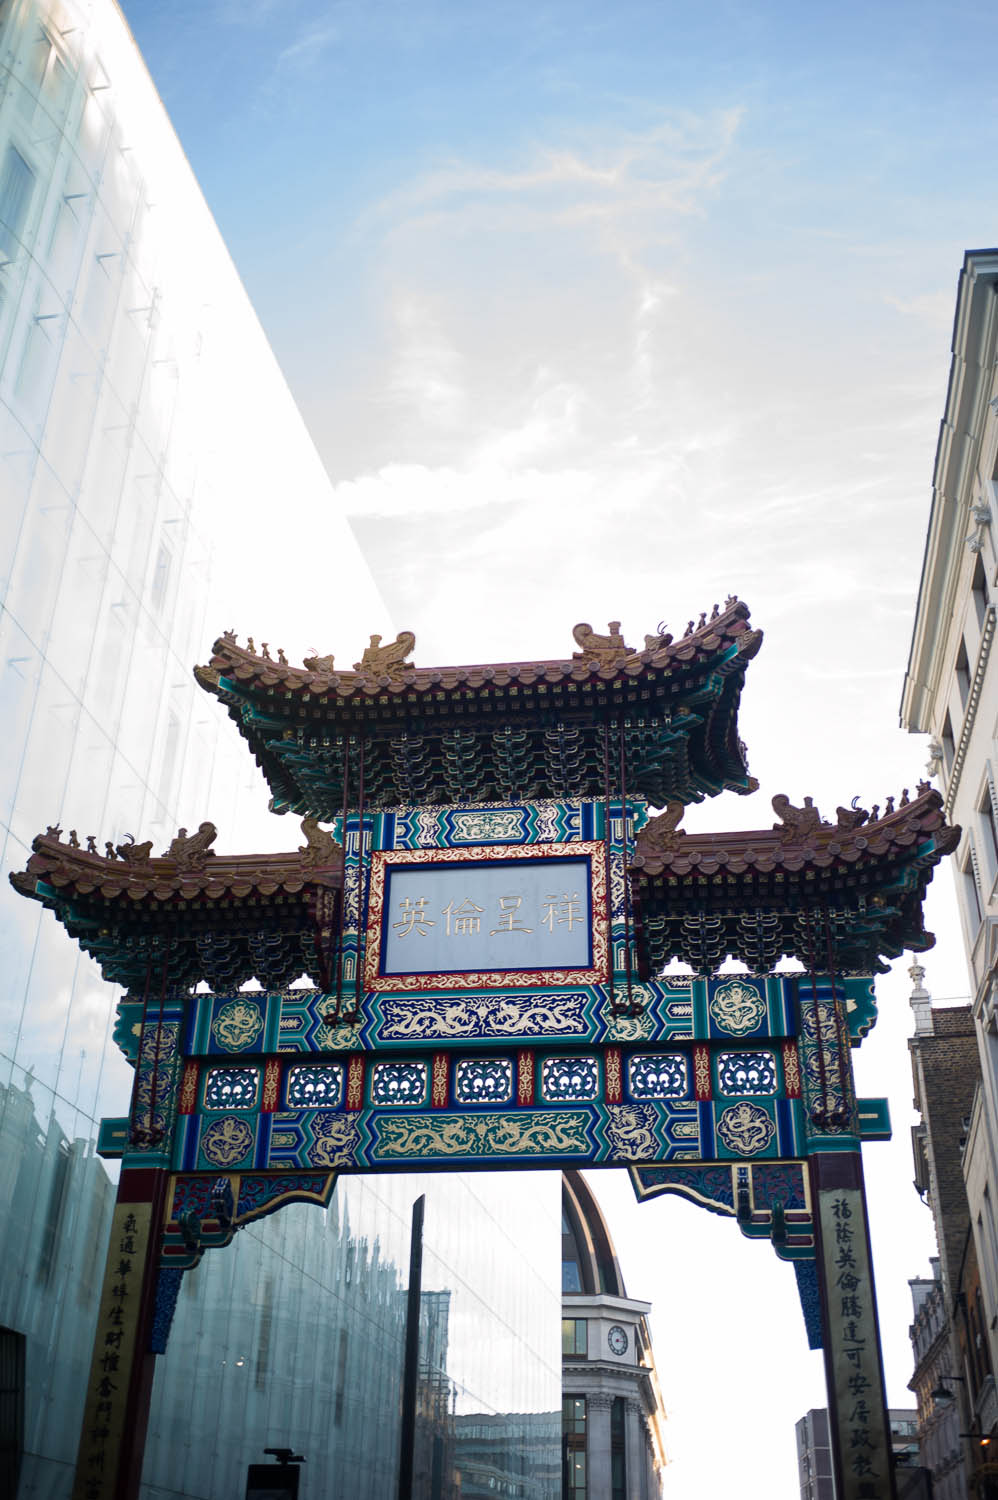 An arch in Chinatown, London